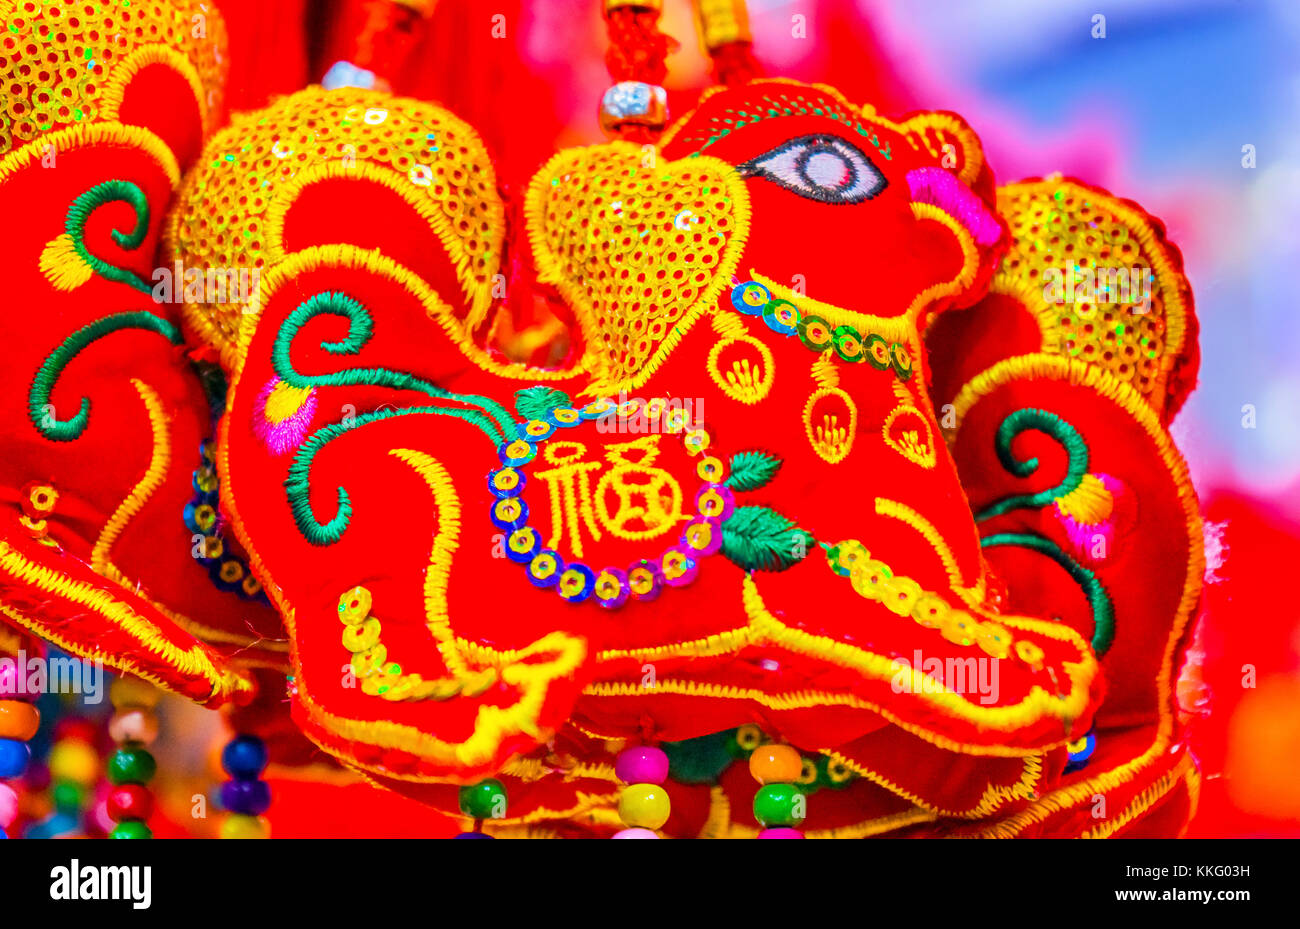 red ancient dogs chinese lunar new year decorations beijing china 2018 year of the dog in chinese lunar new year decorations hung by many chinese - Chinese Lunar New Year